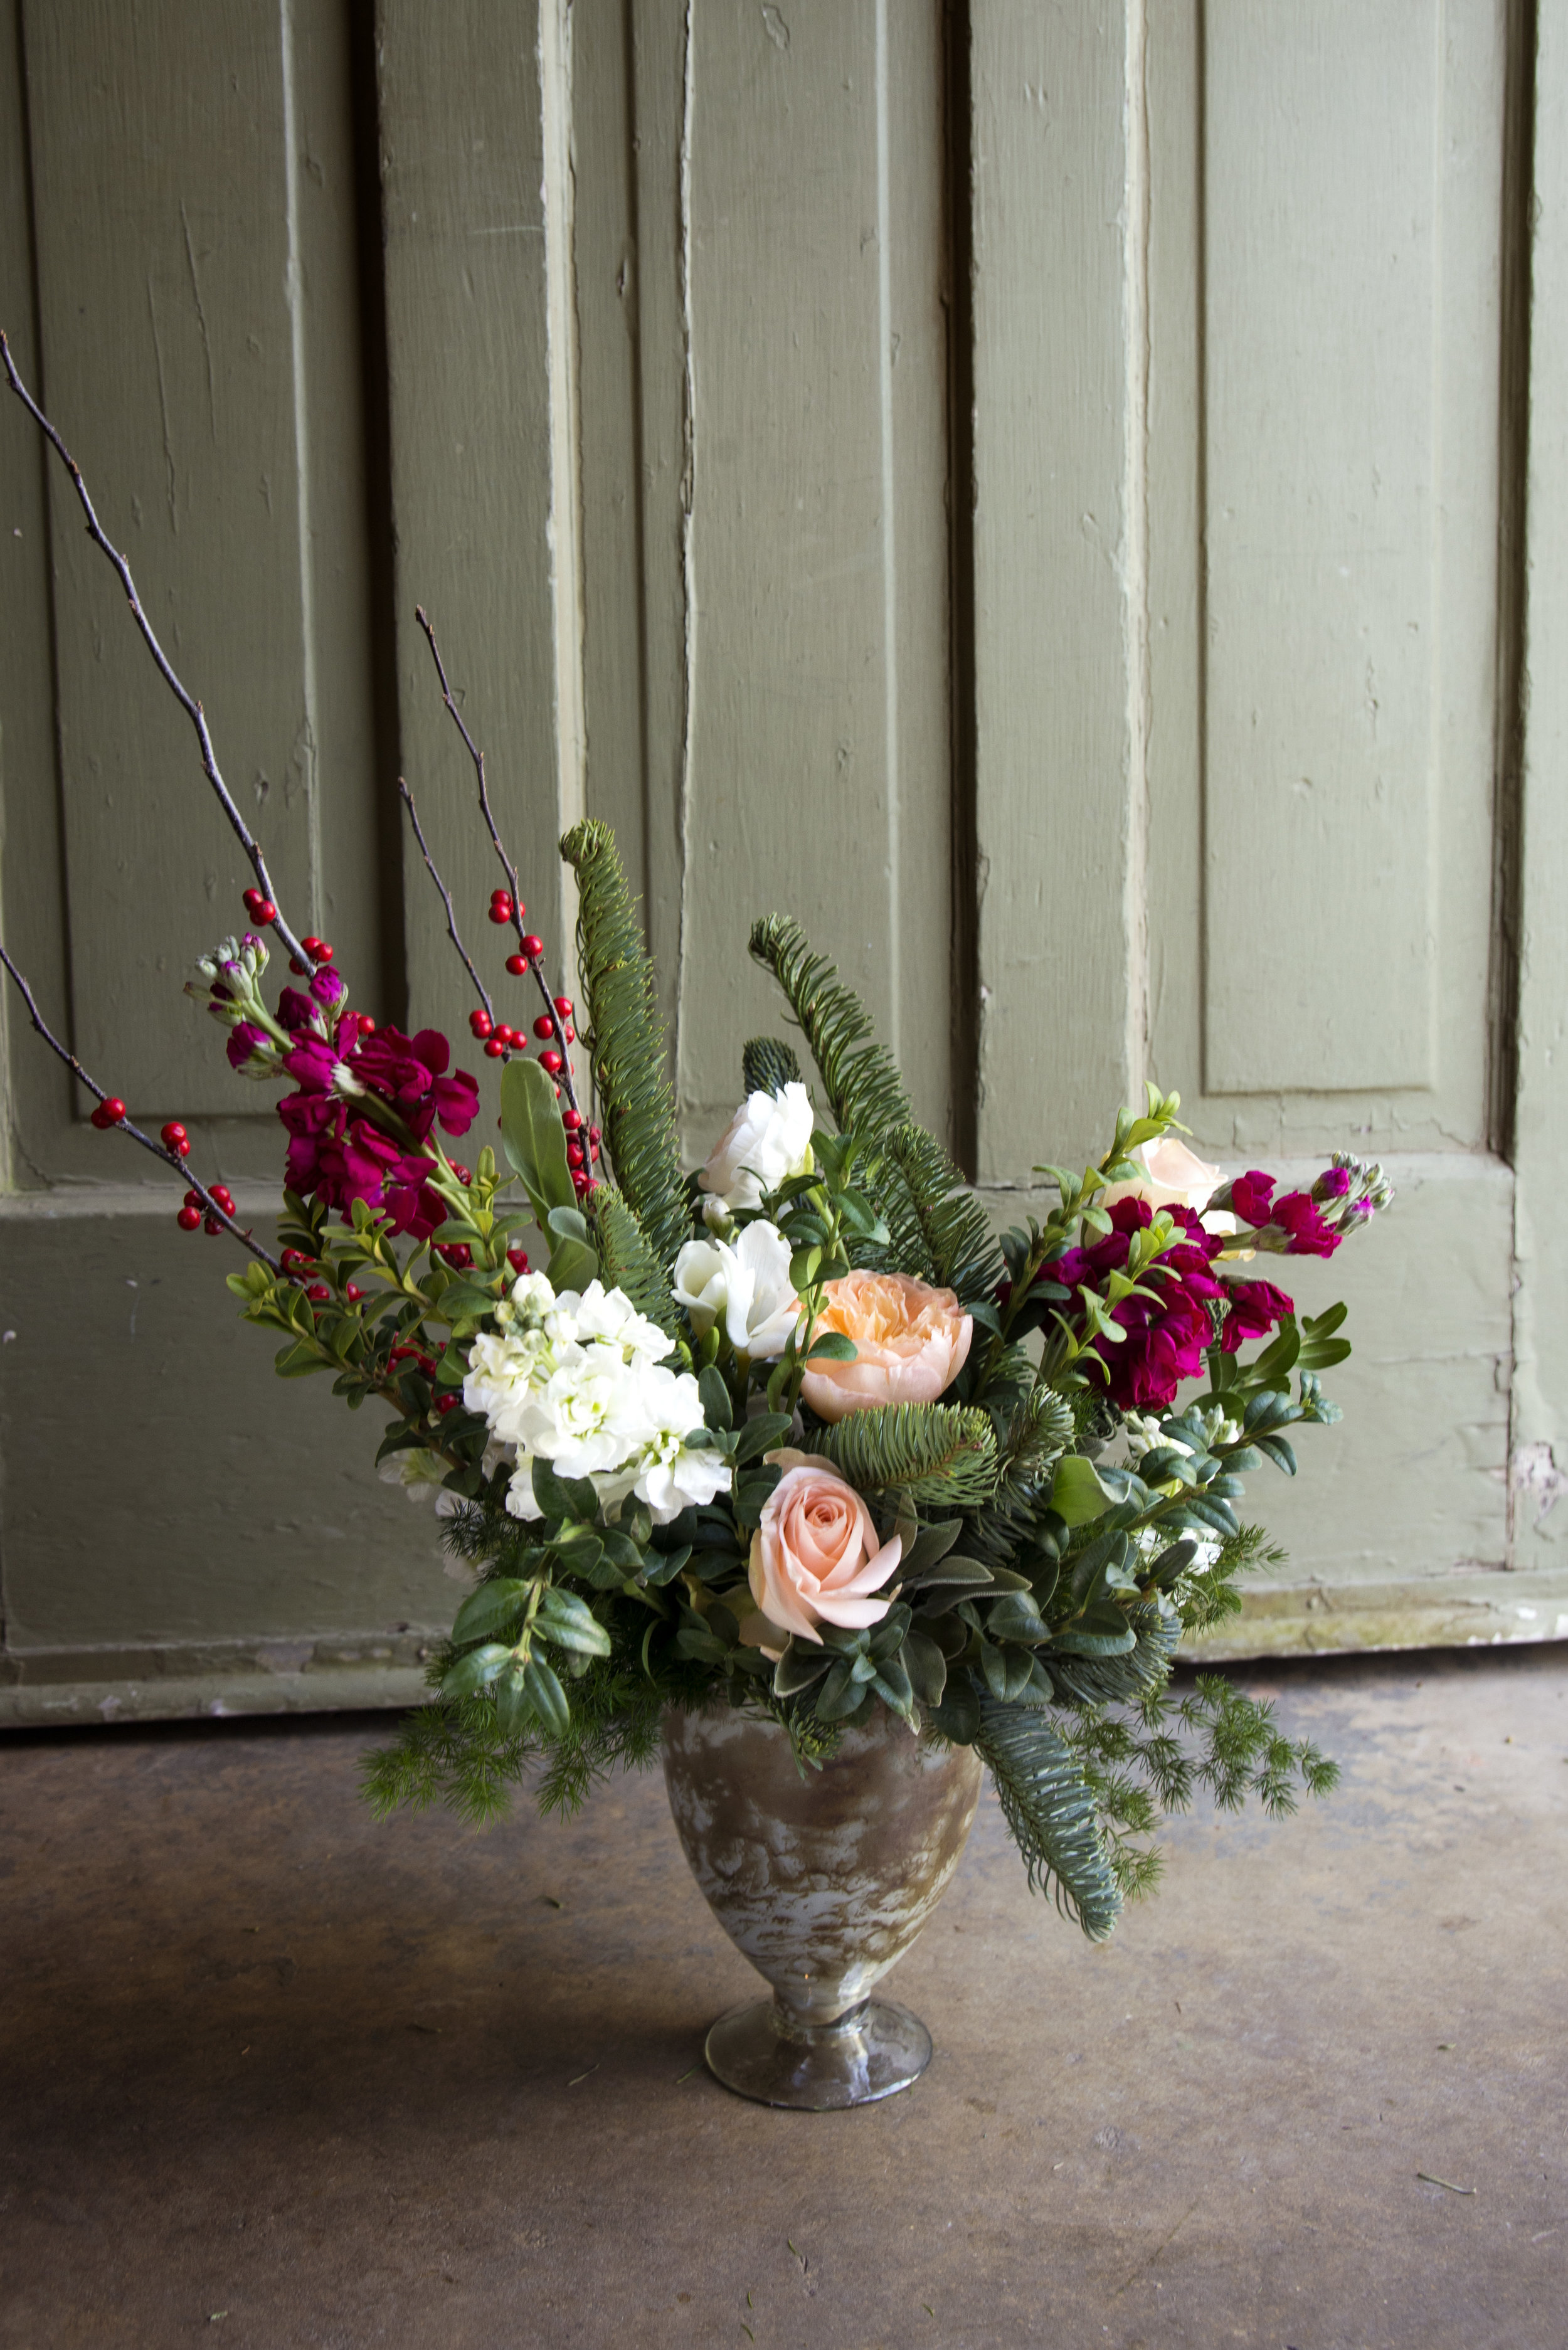 holiday 2 meets baby girls fresh cut flower arrangement stephanie tarrant mitchs flowers new orleans florist louisiana flower shop.jpg